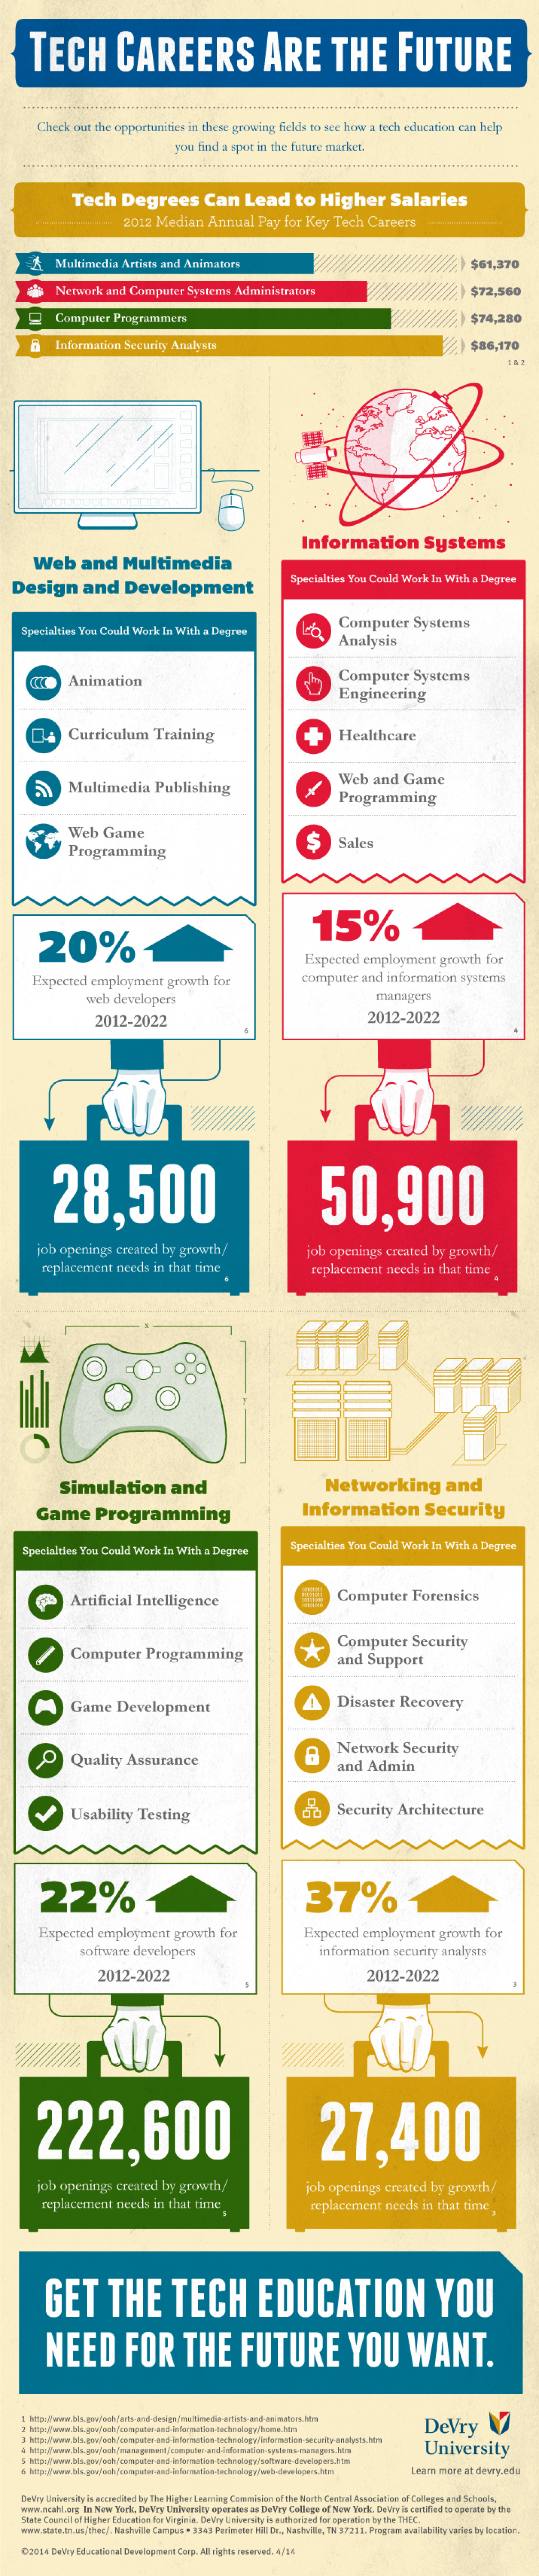 Tech Careers Are the Future  Infographic